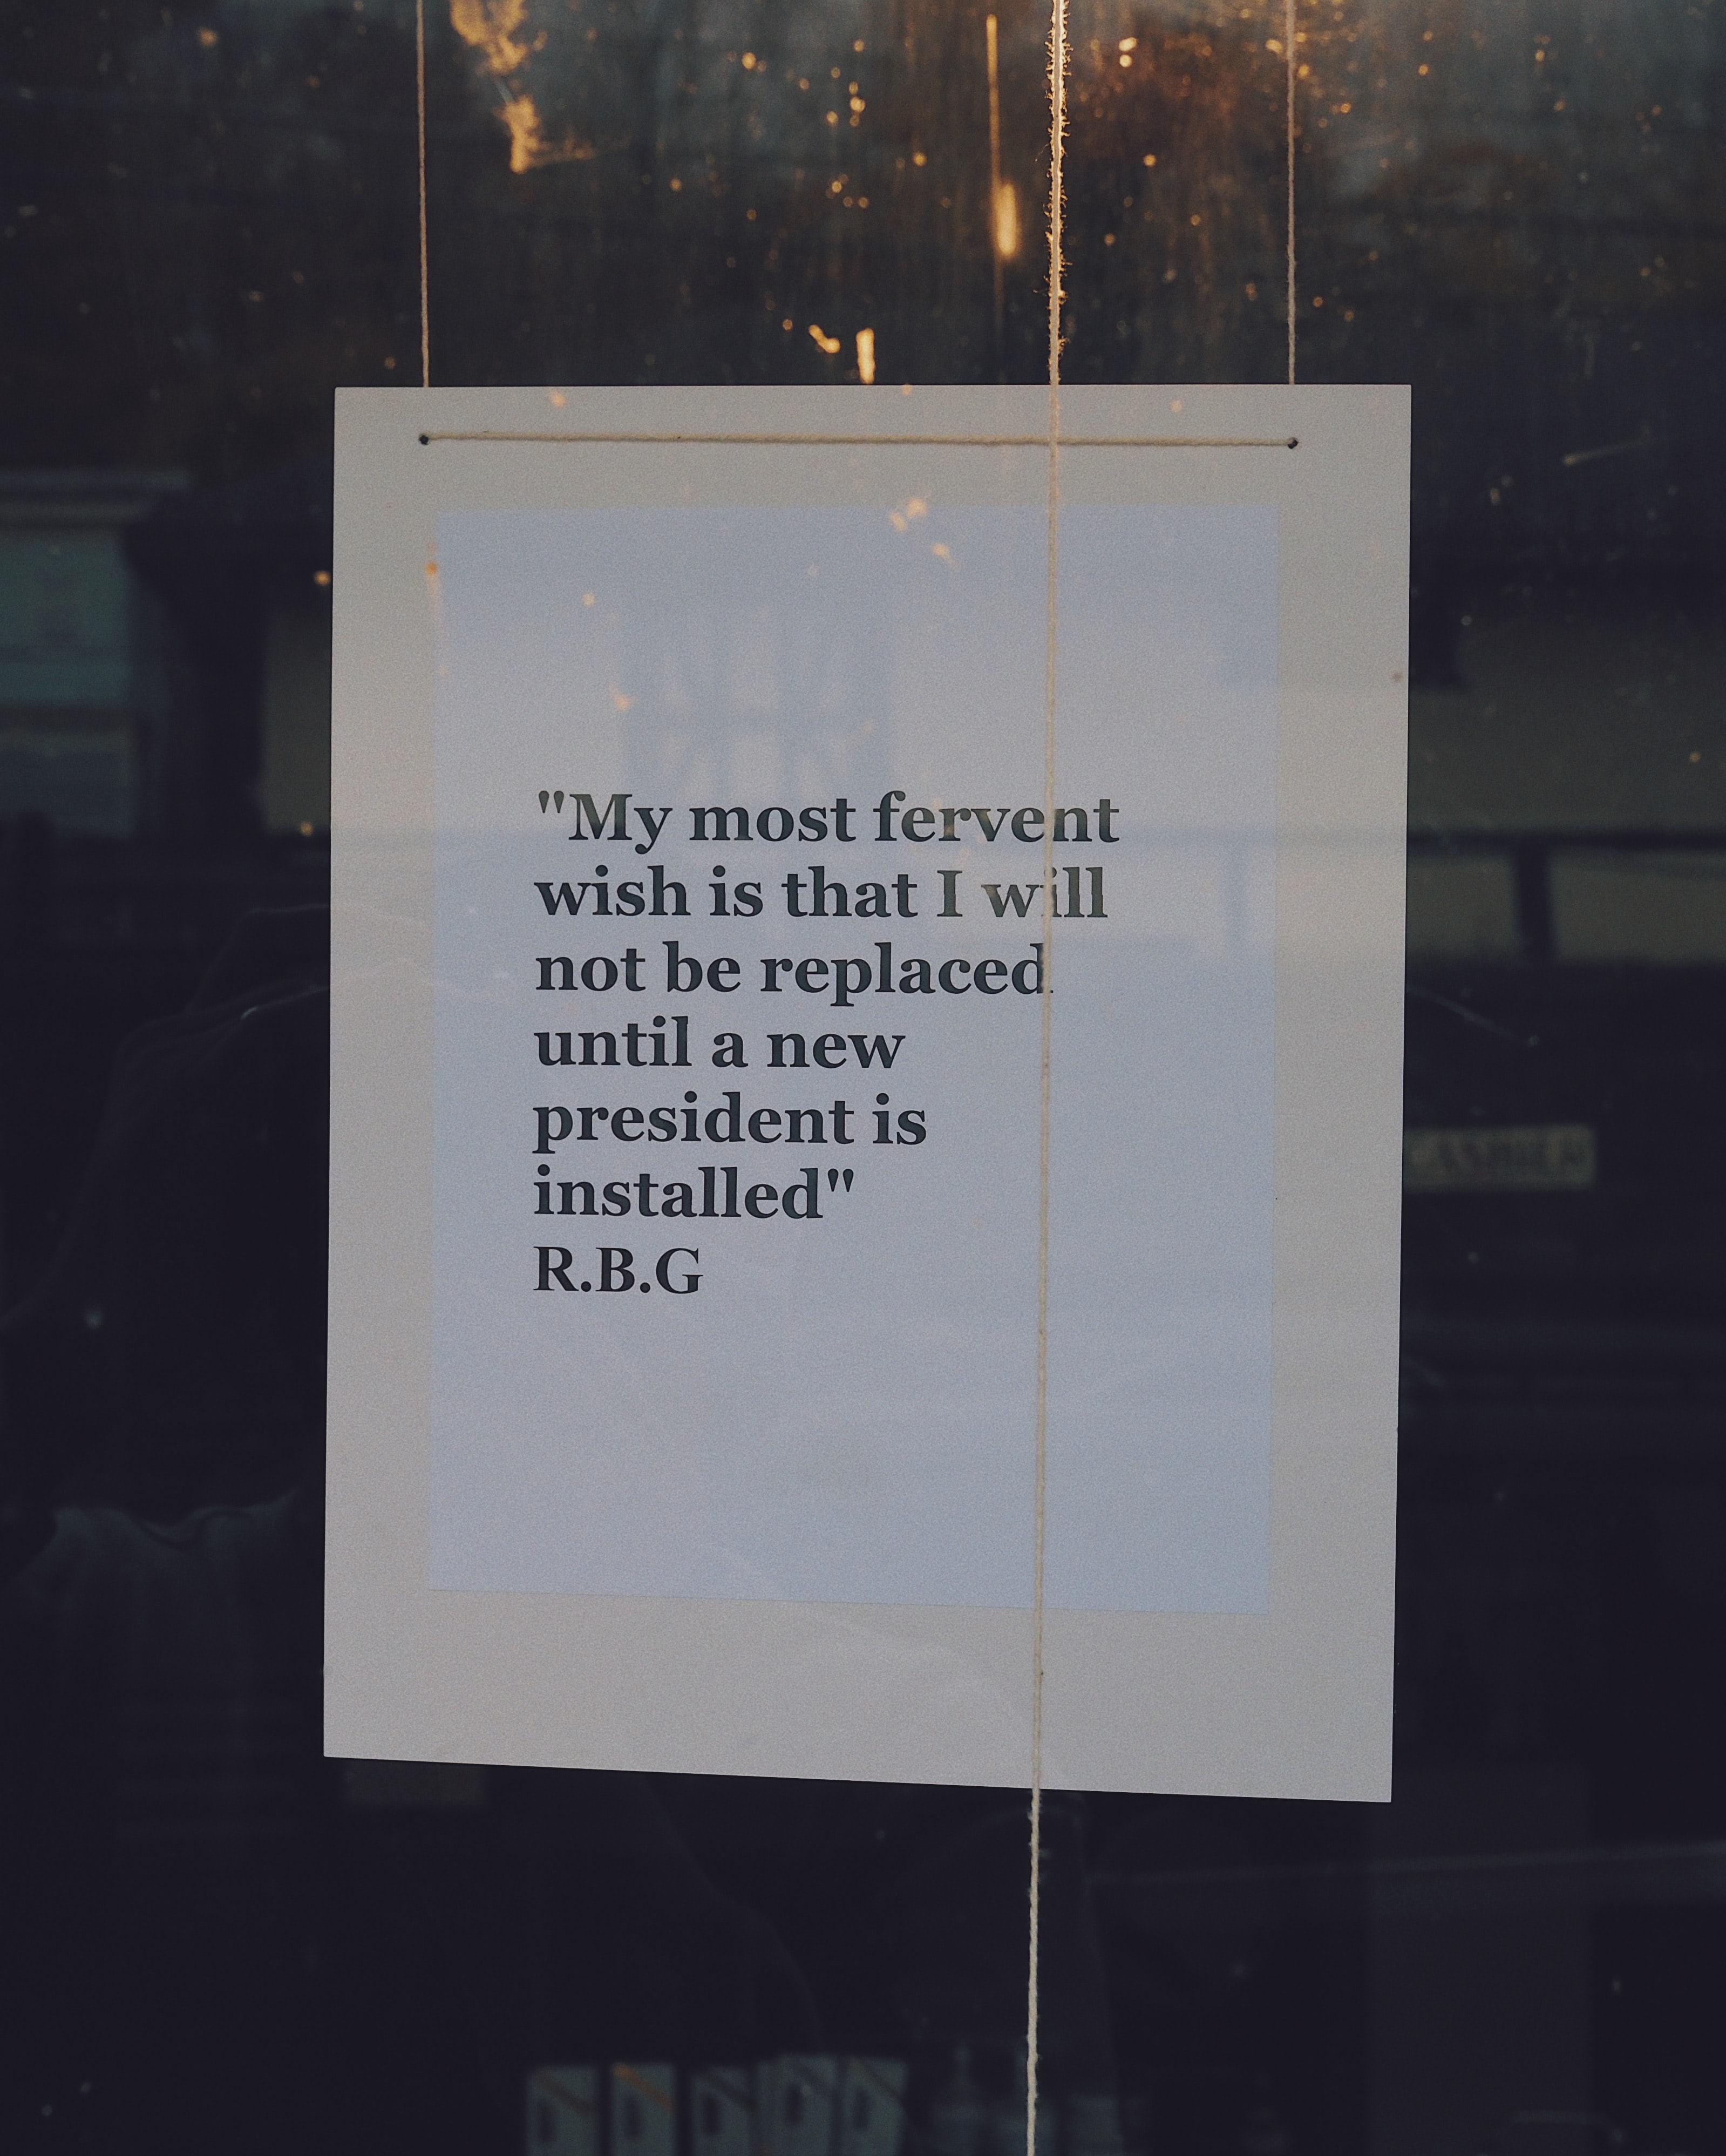 "Photo of a sign haging in a window that says, ""'My most fervent wish is that I will not be replaced until a new president is installed.' R.B.G."" Image courtesy of Greg Schmigel via Unsplash."